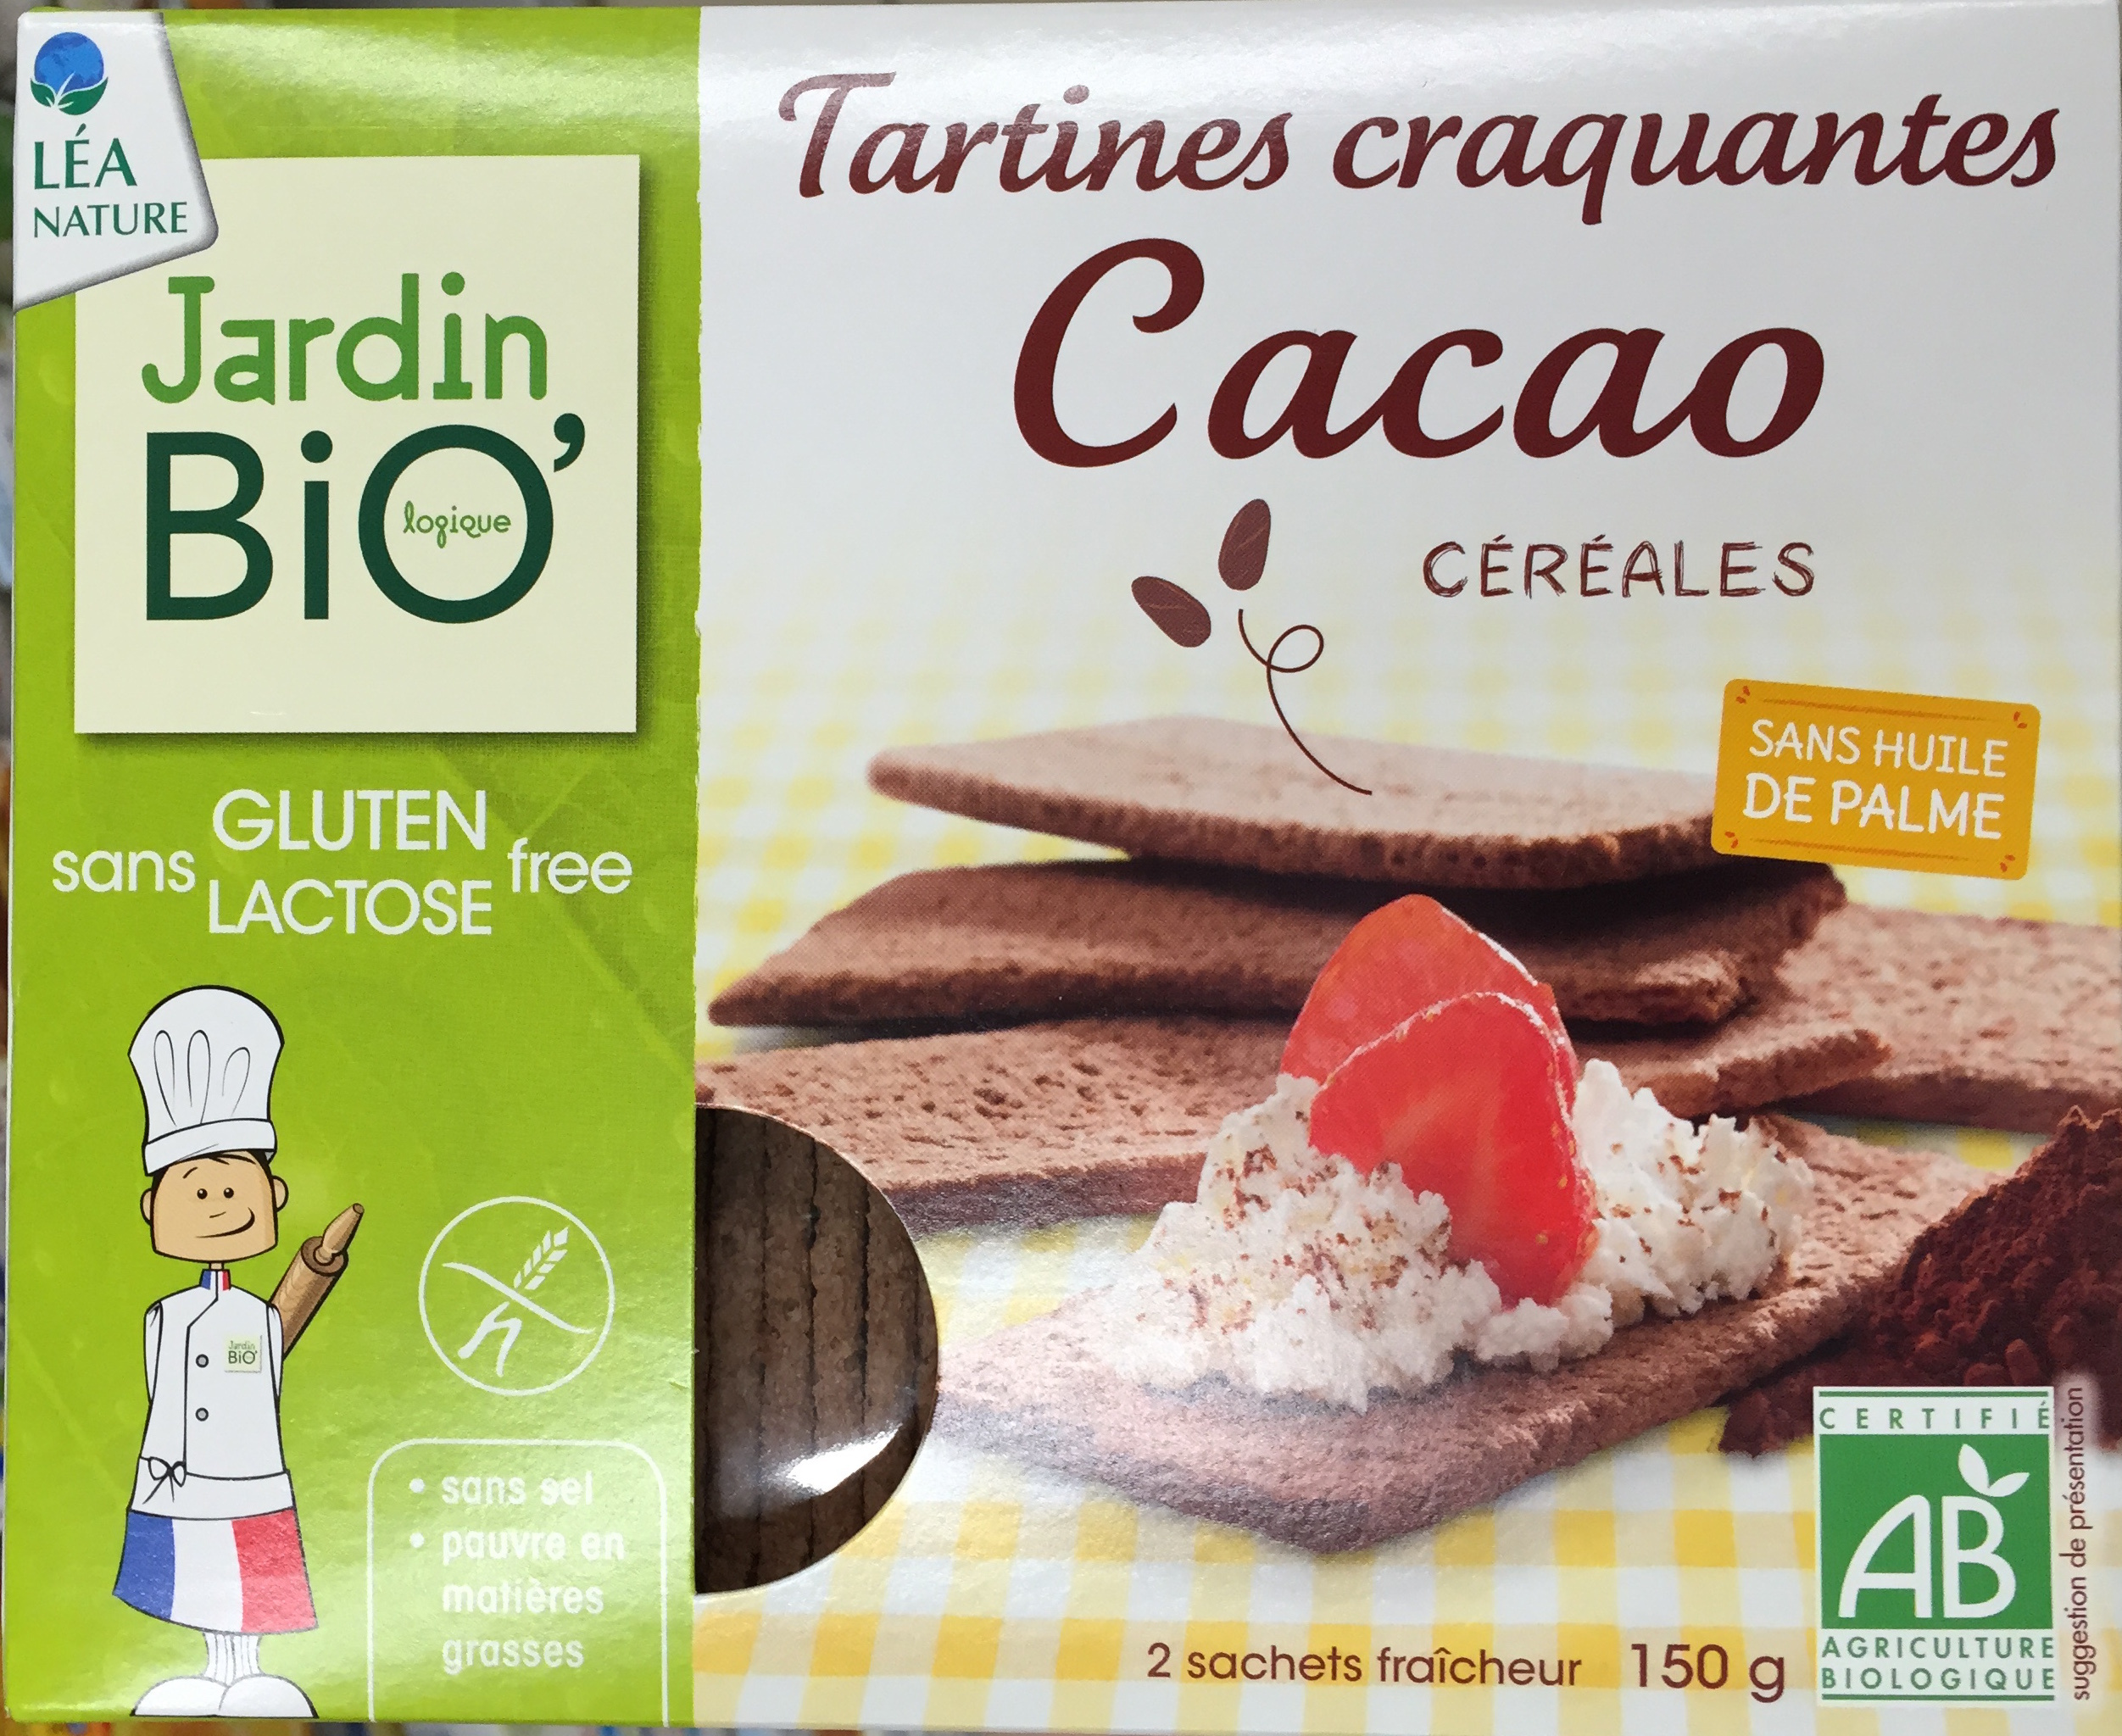 tartines craquantes cacao c r ales jardin bio 2 75 g 150 g. Black Bedroom Furniture Sets. Home Design Ideas